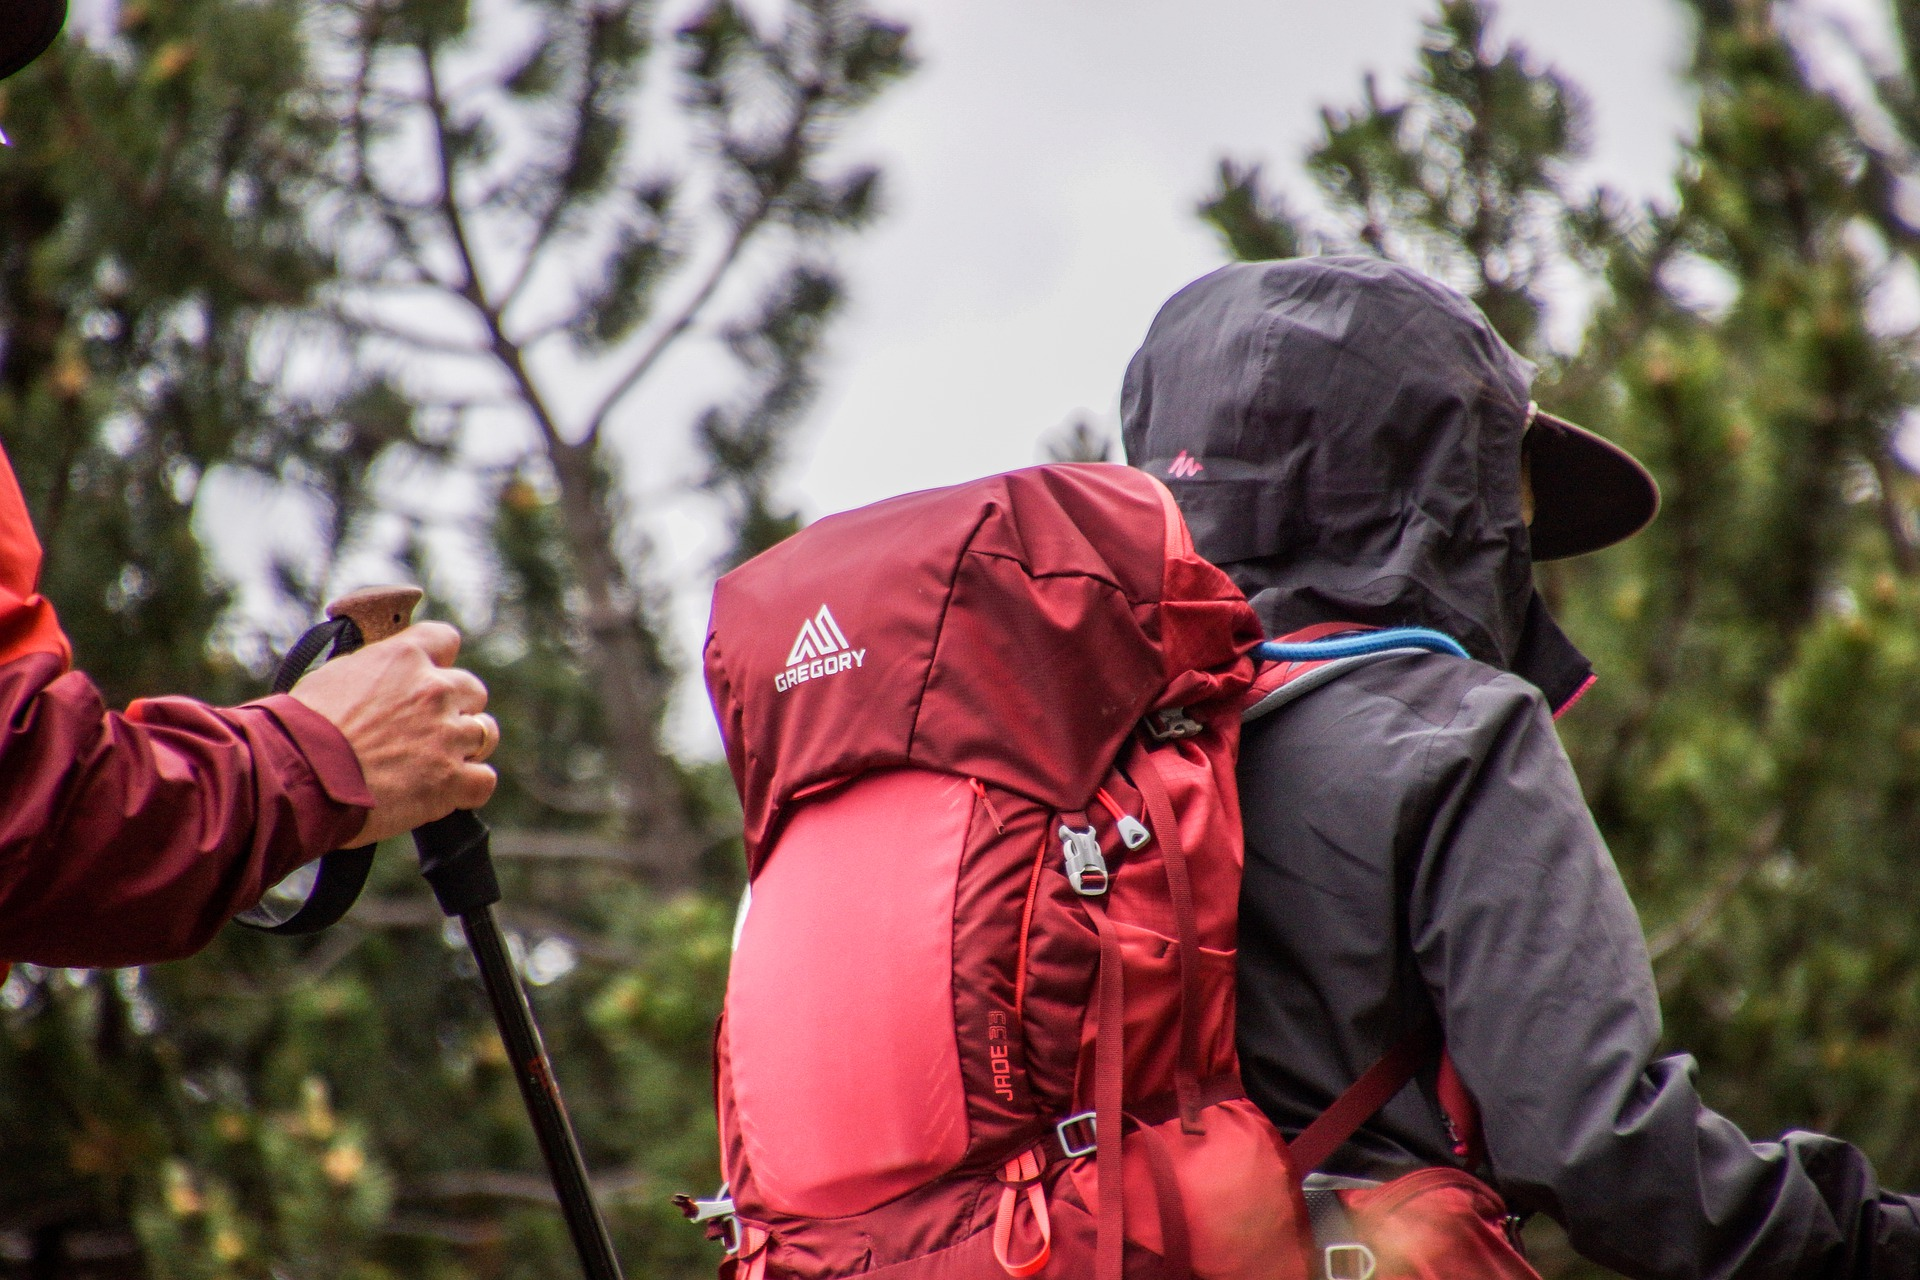 Top tips to do a backpacking trip anywhere in the world, backpacking, hitchhiking, hiking, backpack, rucksack, travelling, touring, tourism, hostel, remote areas, beautiful landscape, destination, wildlife, trails